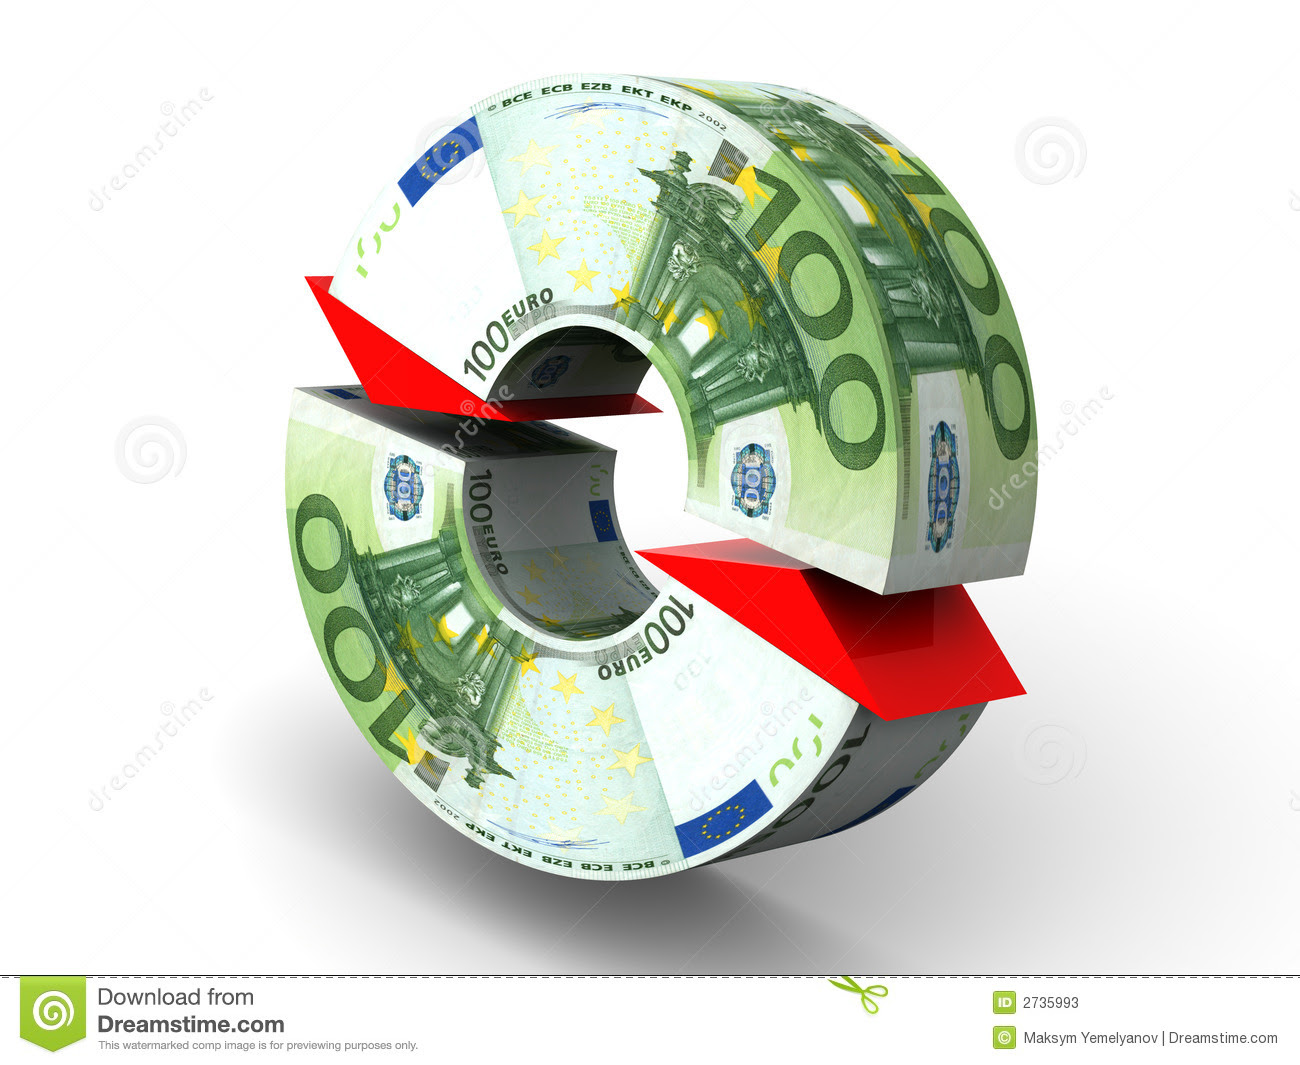 ... three-dimensional illustration, figure. Currency exchange. Euro. 3d